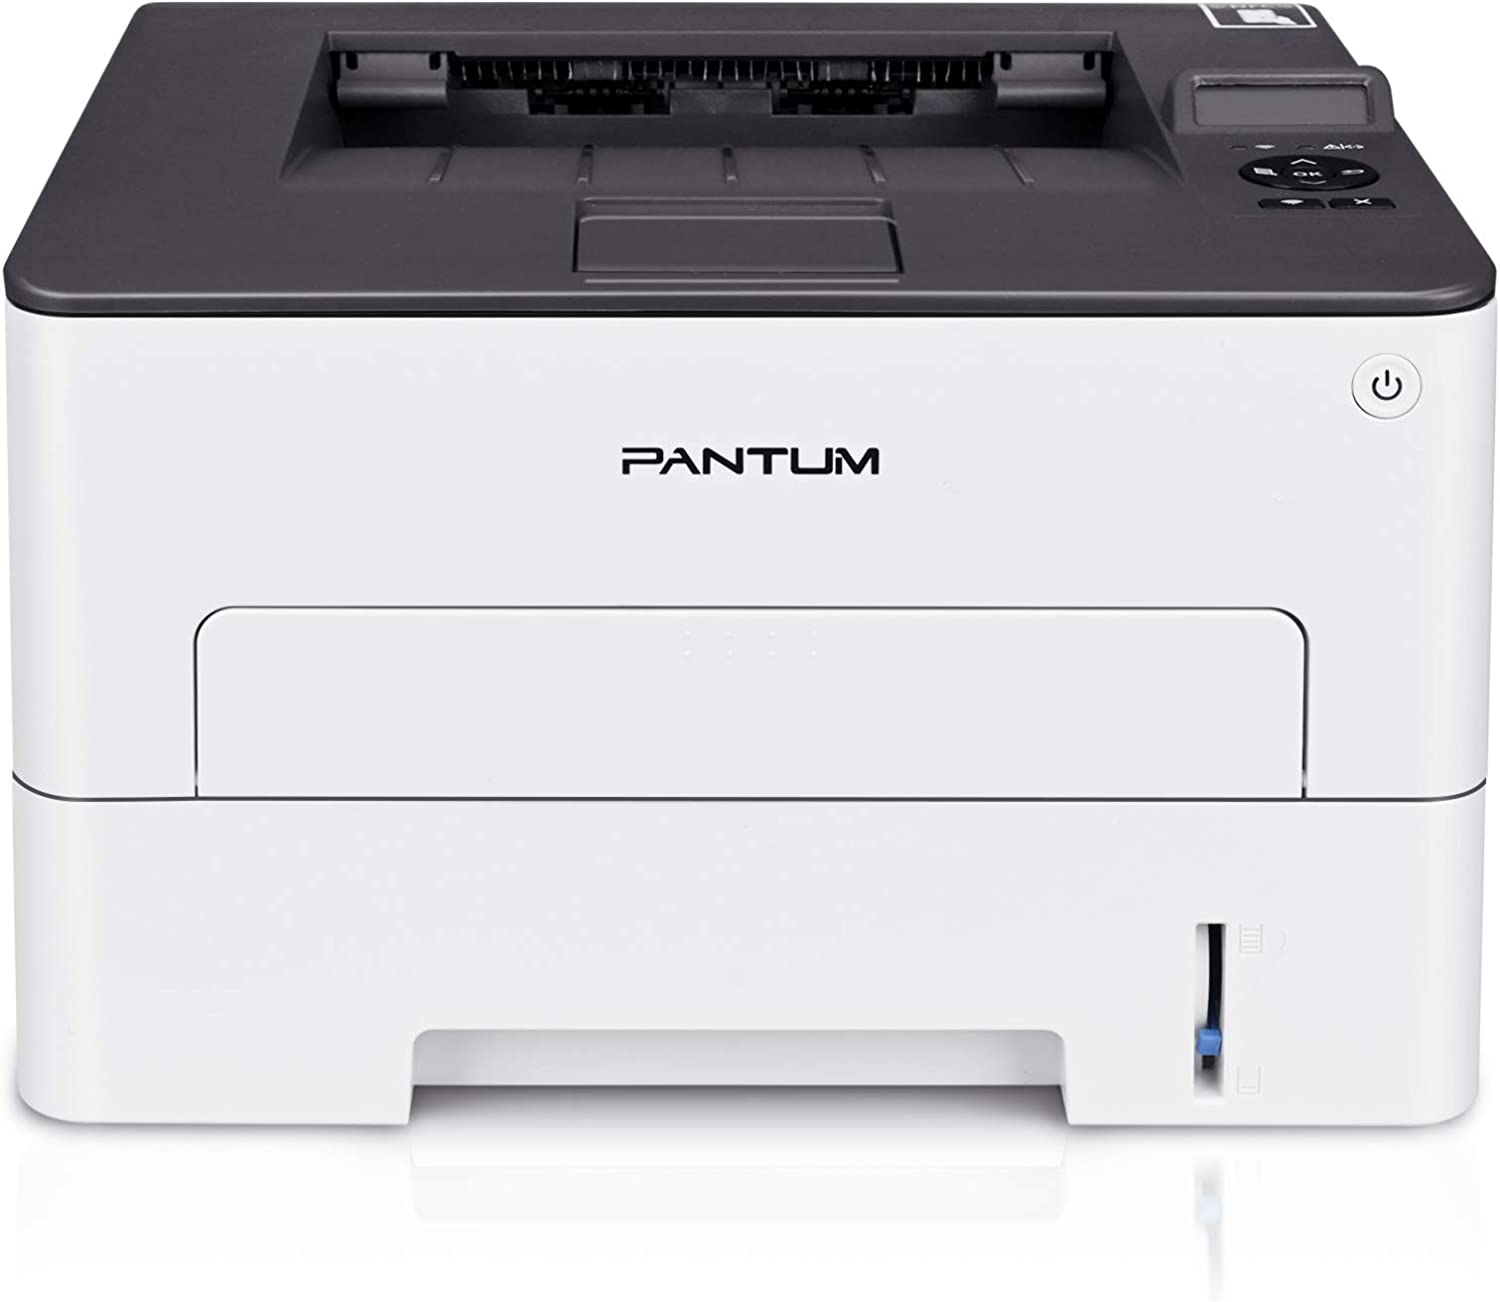 Wireless Laser Printer for Home Use with Auto Duplex Printing and NFC, Printing up to 35 ppm, Pantum L2350DW